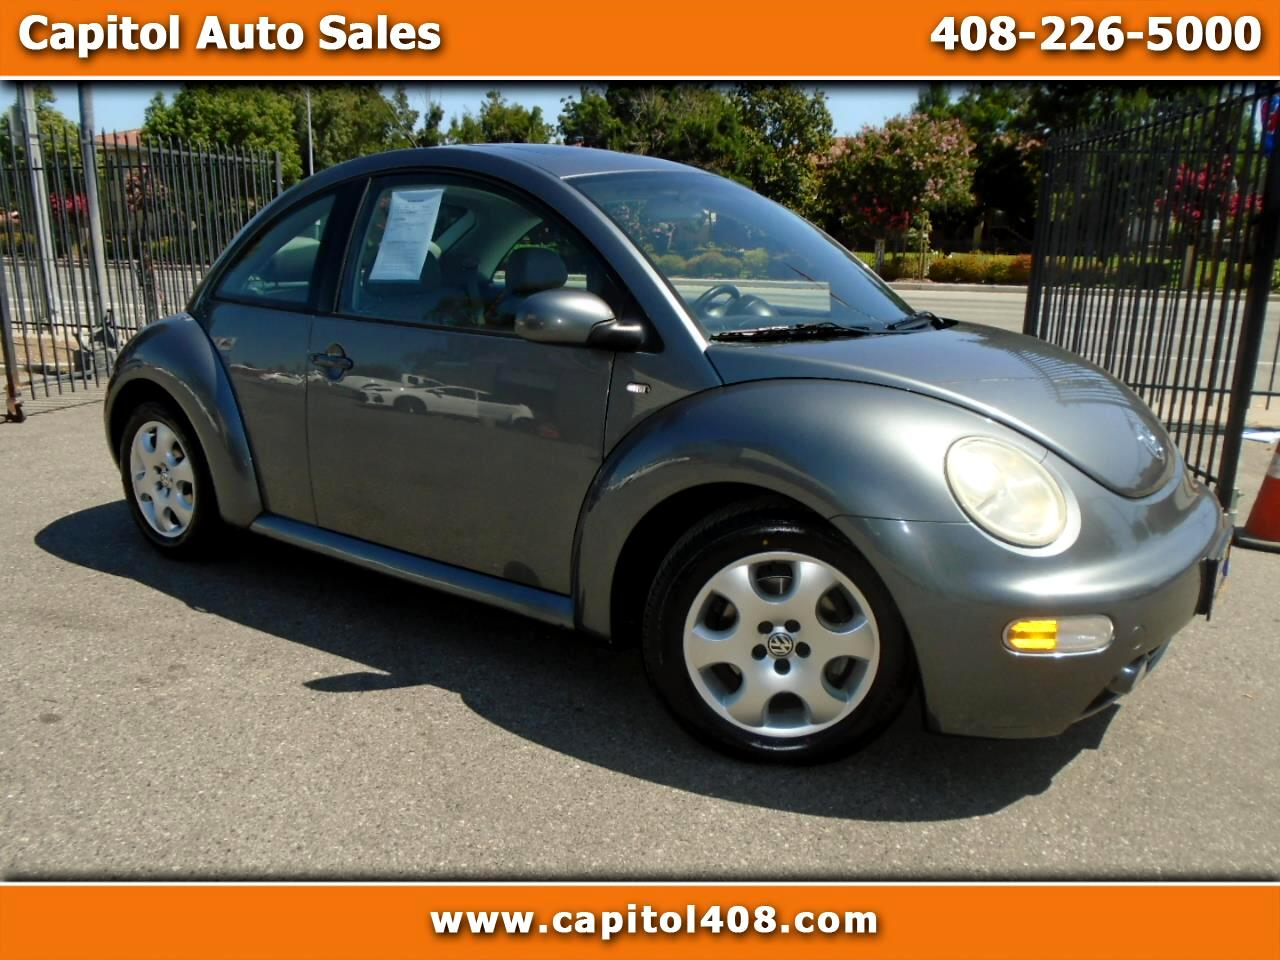 2003 Volkswagen New Beetle Coupe 2dr Cpe GLS Auto